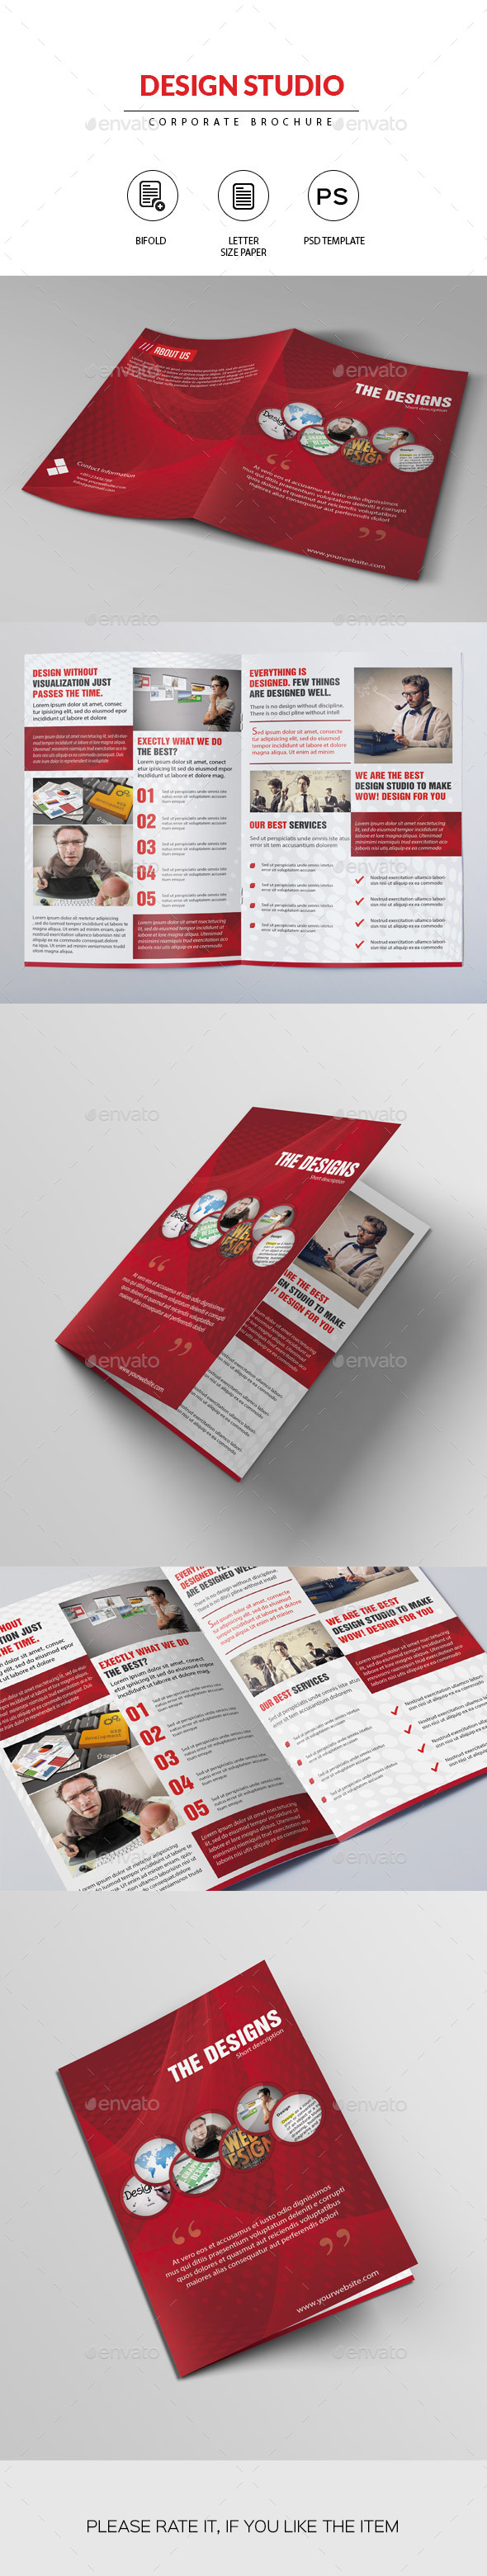 Creative Design Studio Brochure - Corporate Brochures